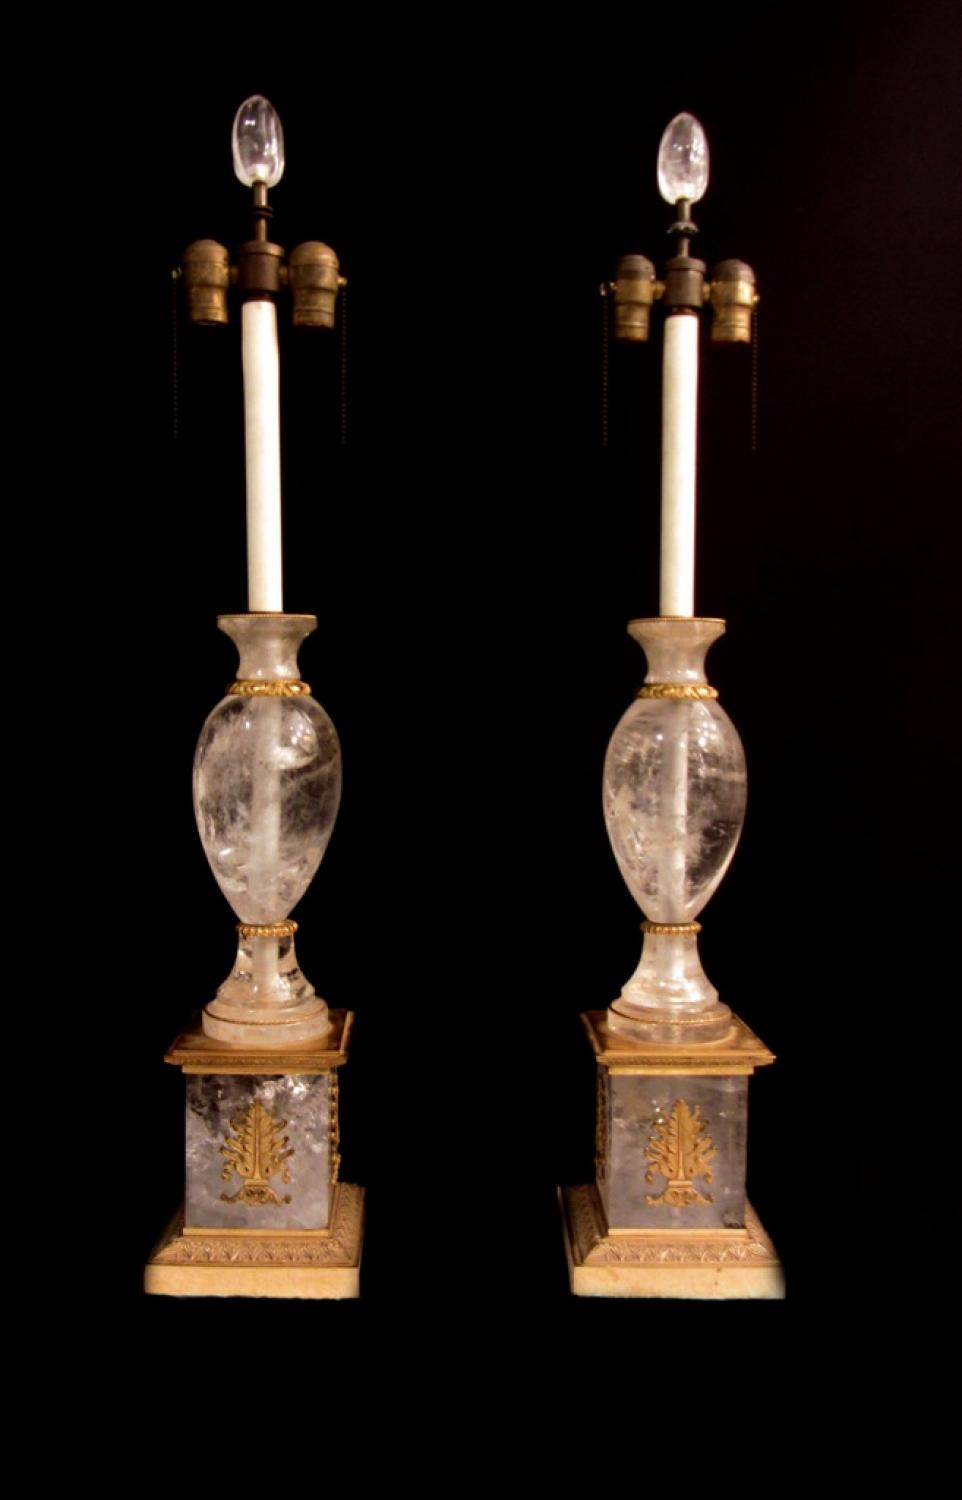 A pair of Empire style rock crystal lamps